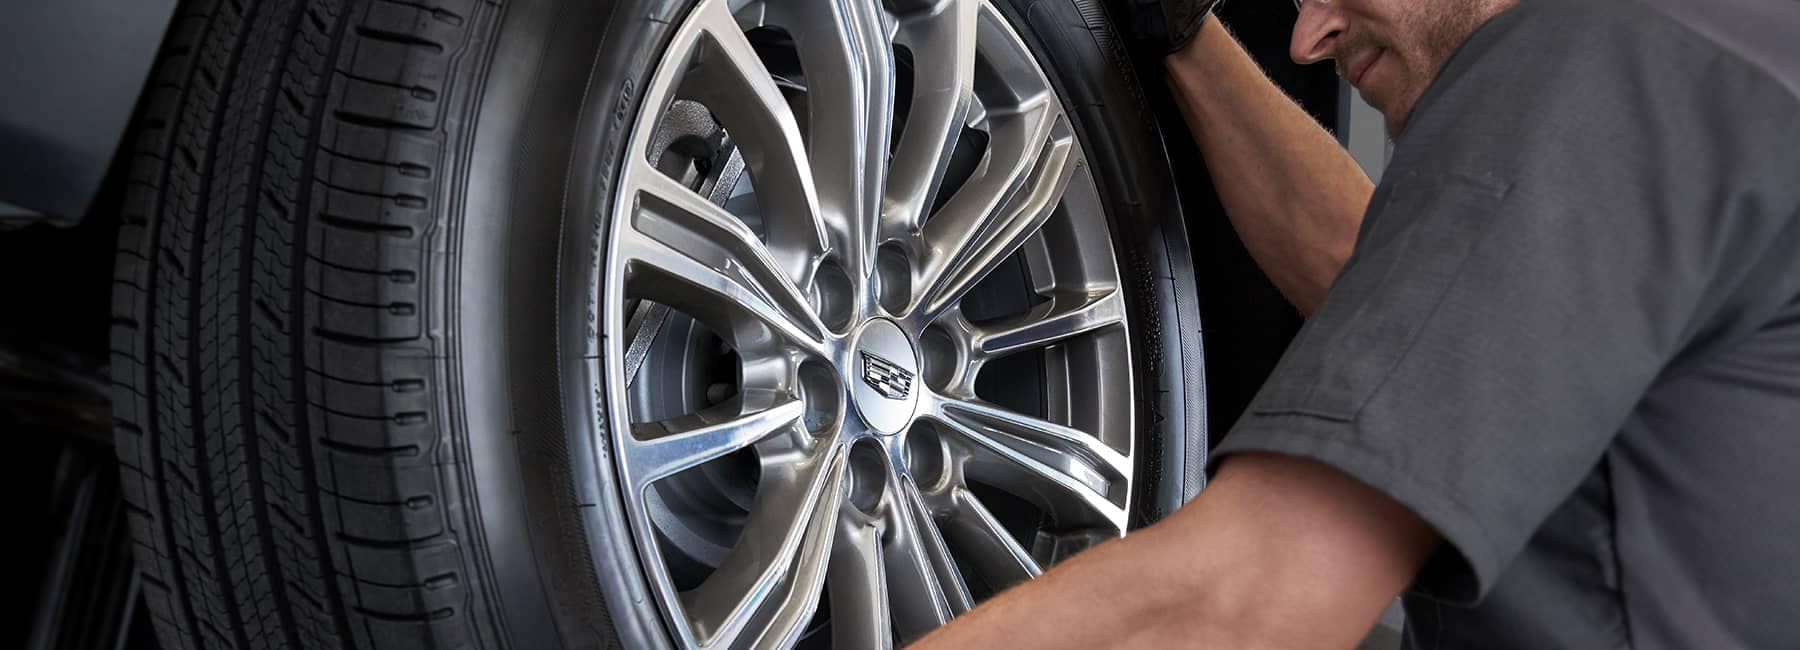 Cadillac Tire being changed